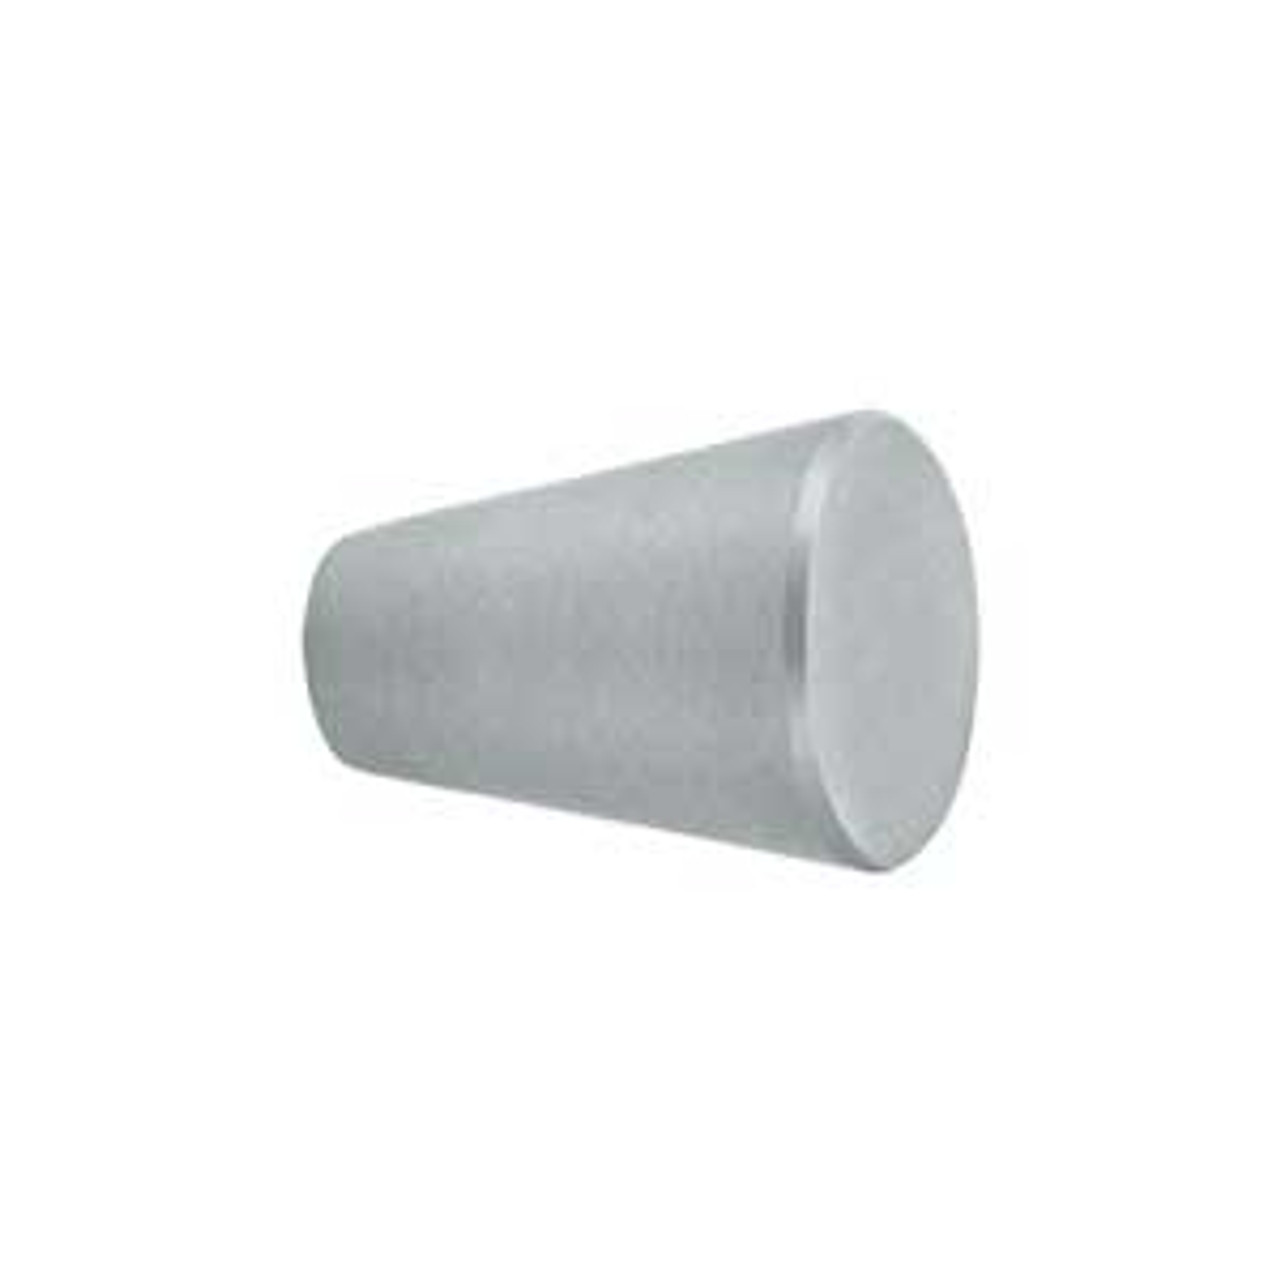 "3/4"" Dia. Cone Cabinet Knob - Brushed Chrome (DELH-KC20U26D)"